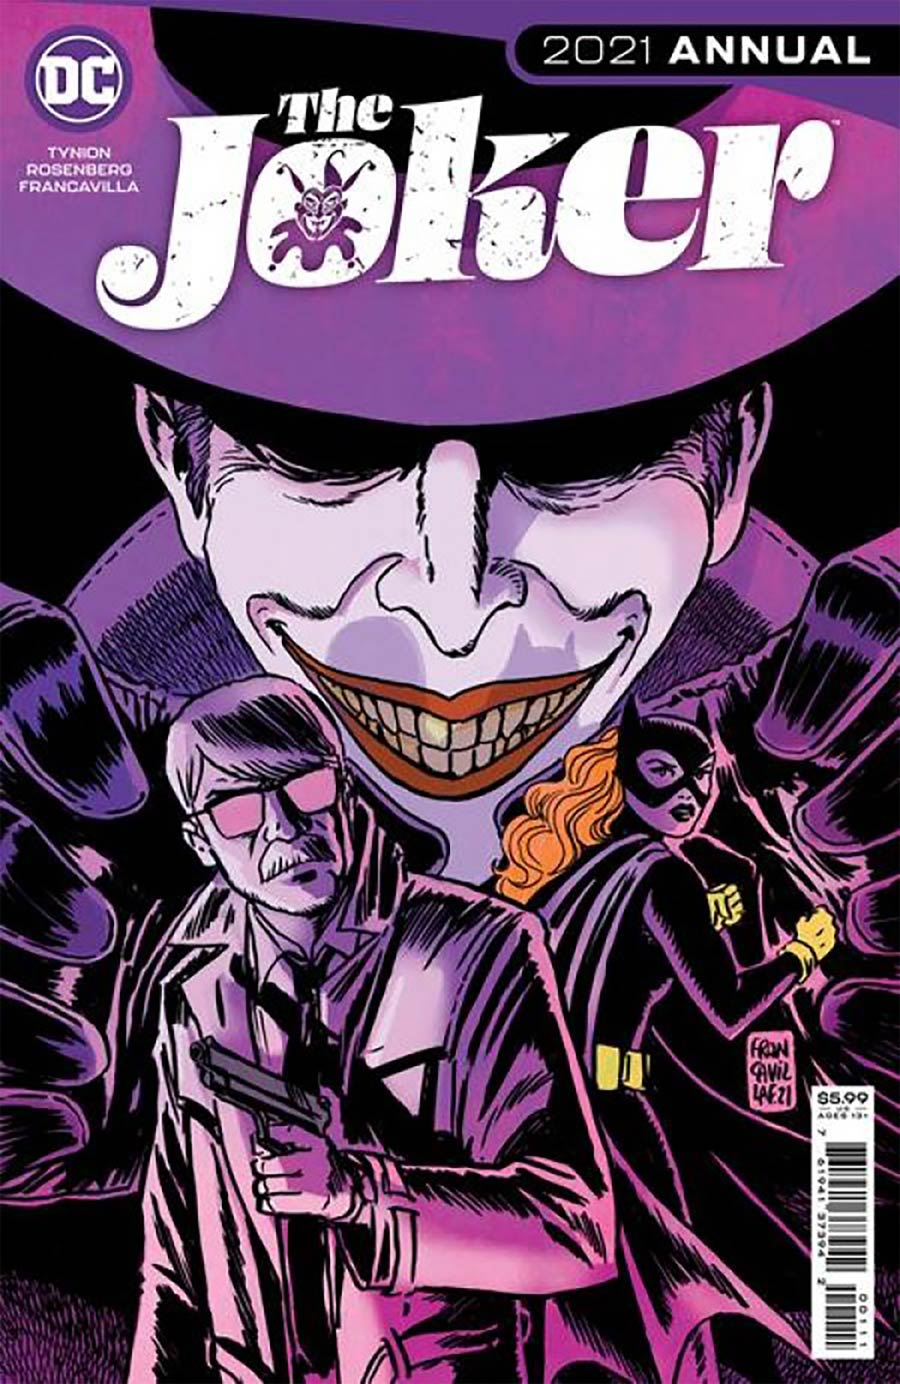 Joker Vol 2 2021 Annual #1 (One Shot) Cover C DF Gold Signature Series Signed By James Tynion IV